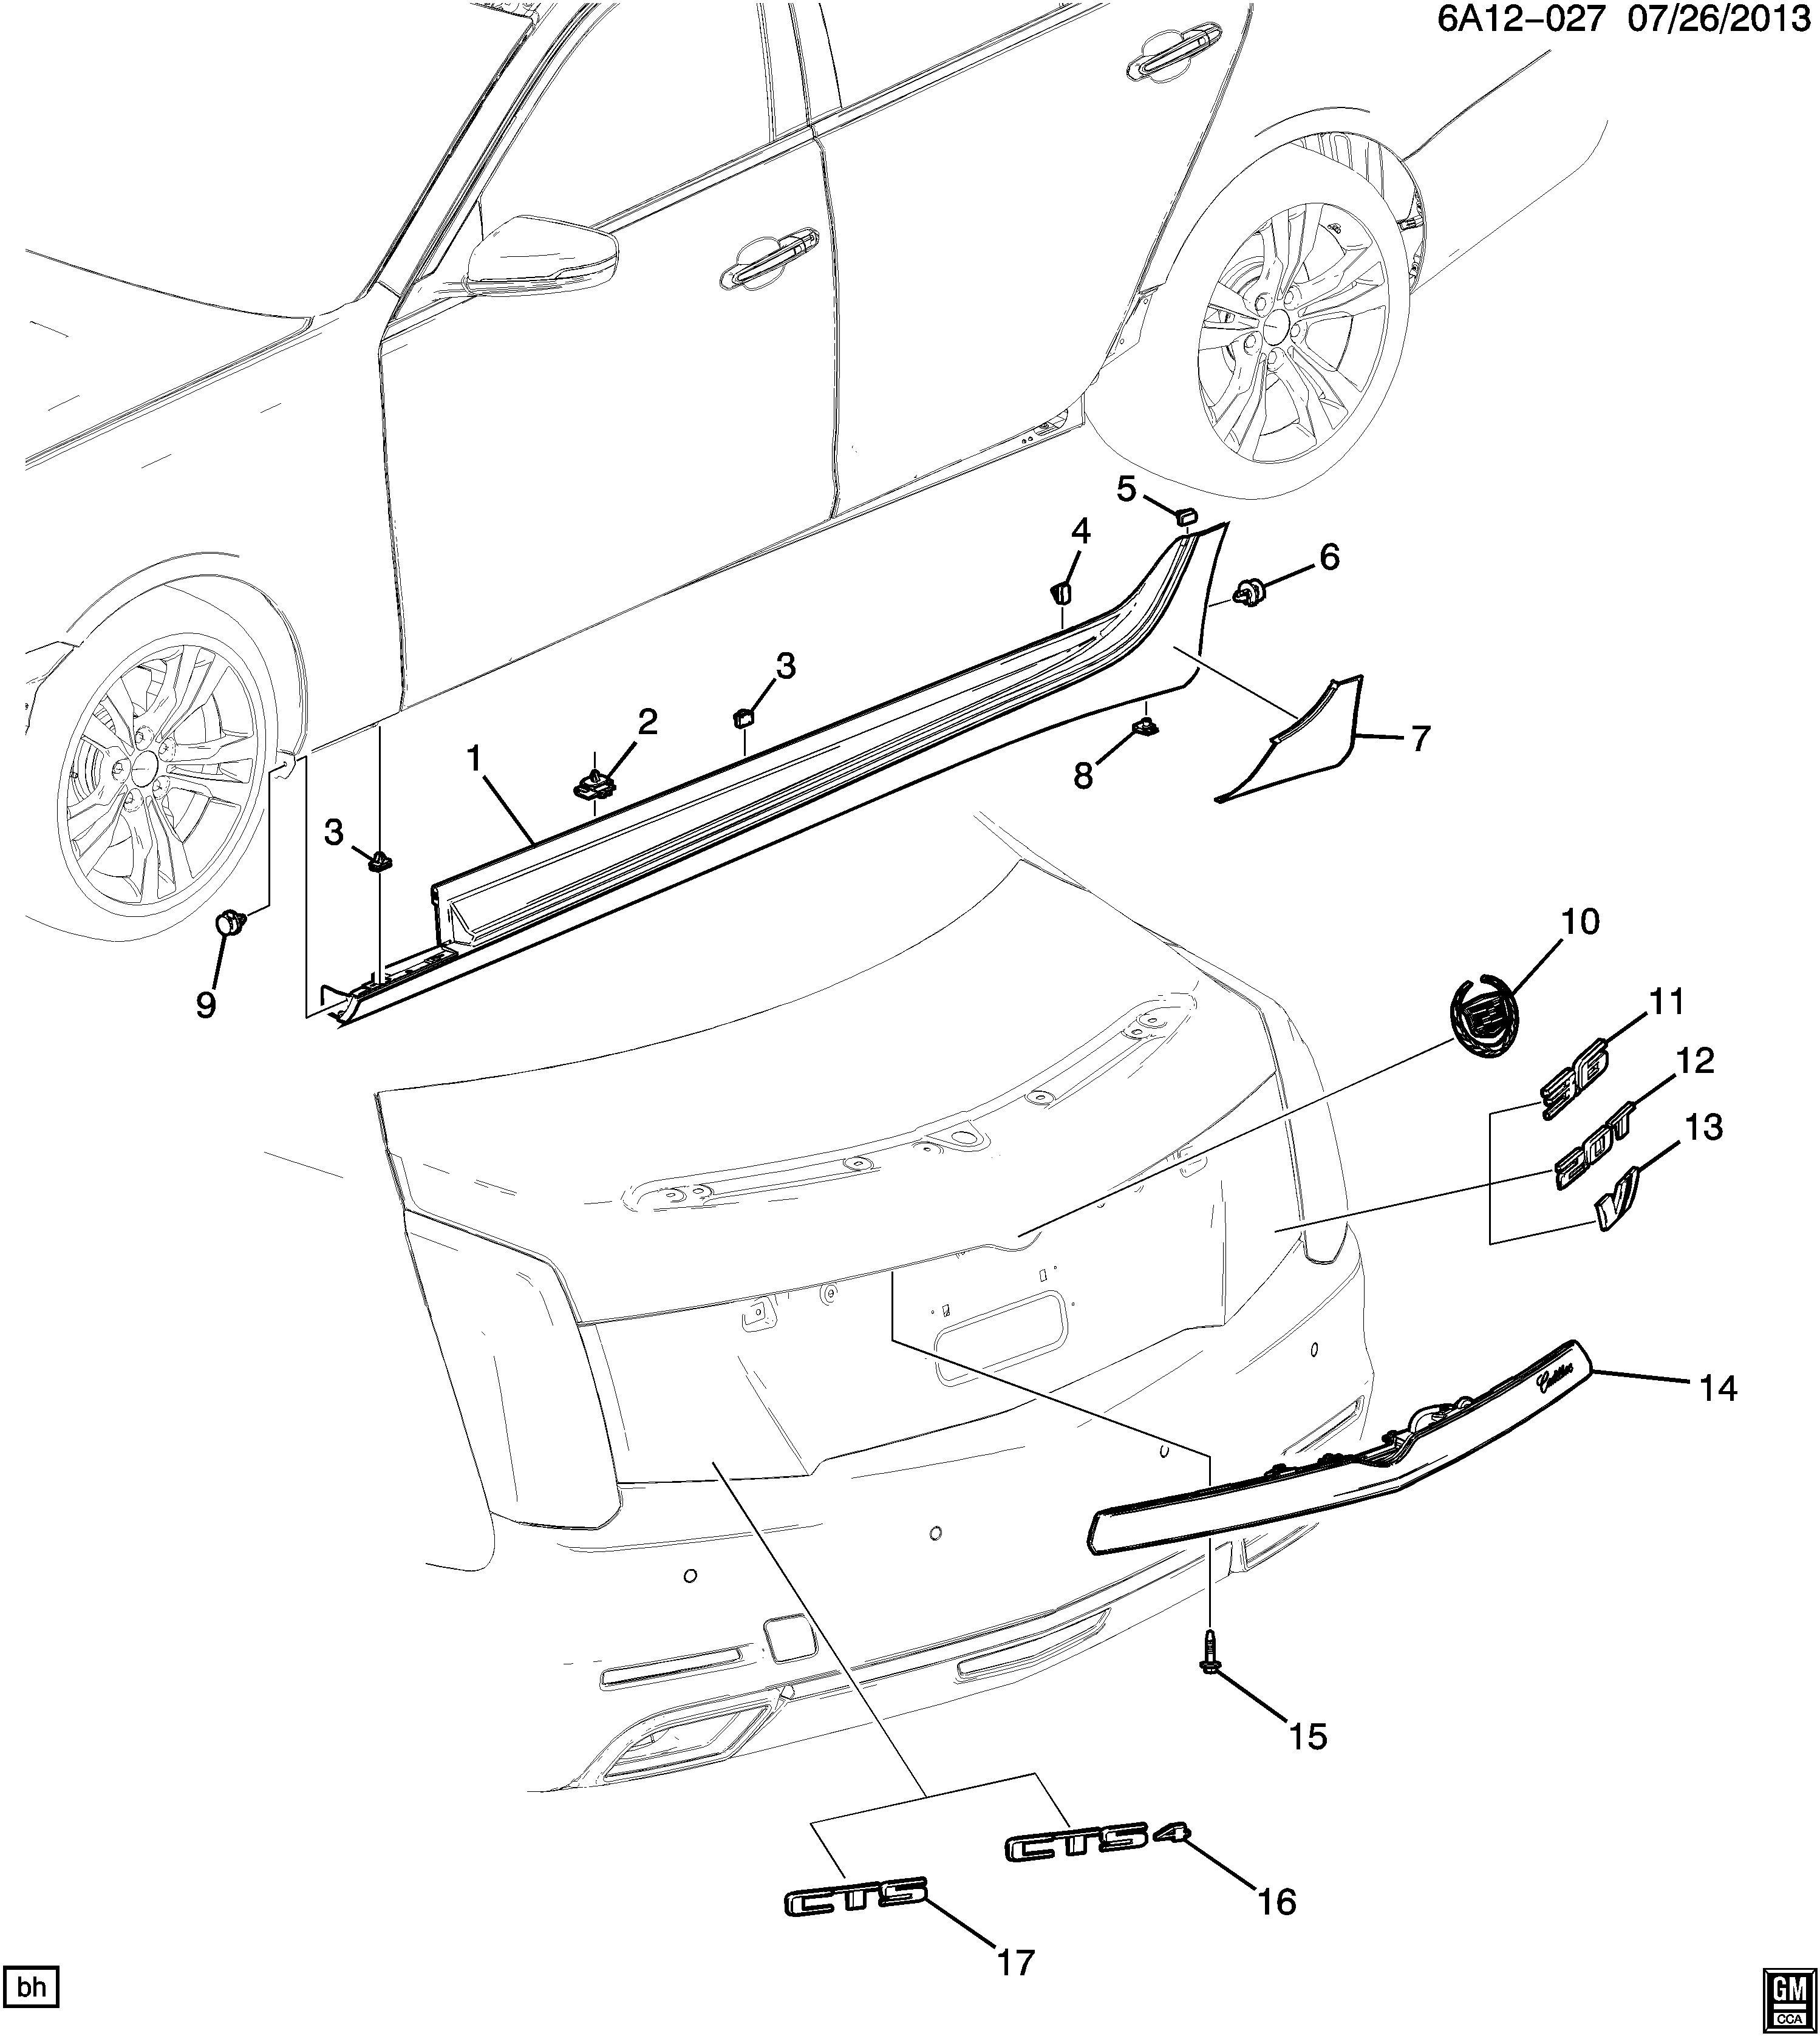 Cadillac Cts Applique Rear End Panel And Tailgate Clsr